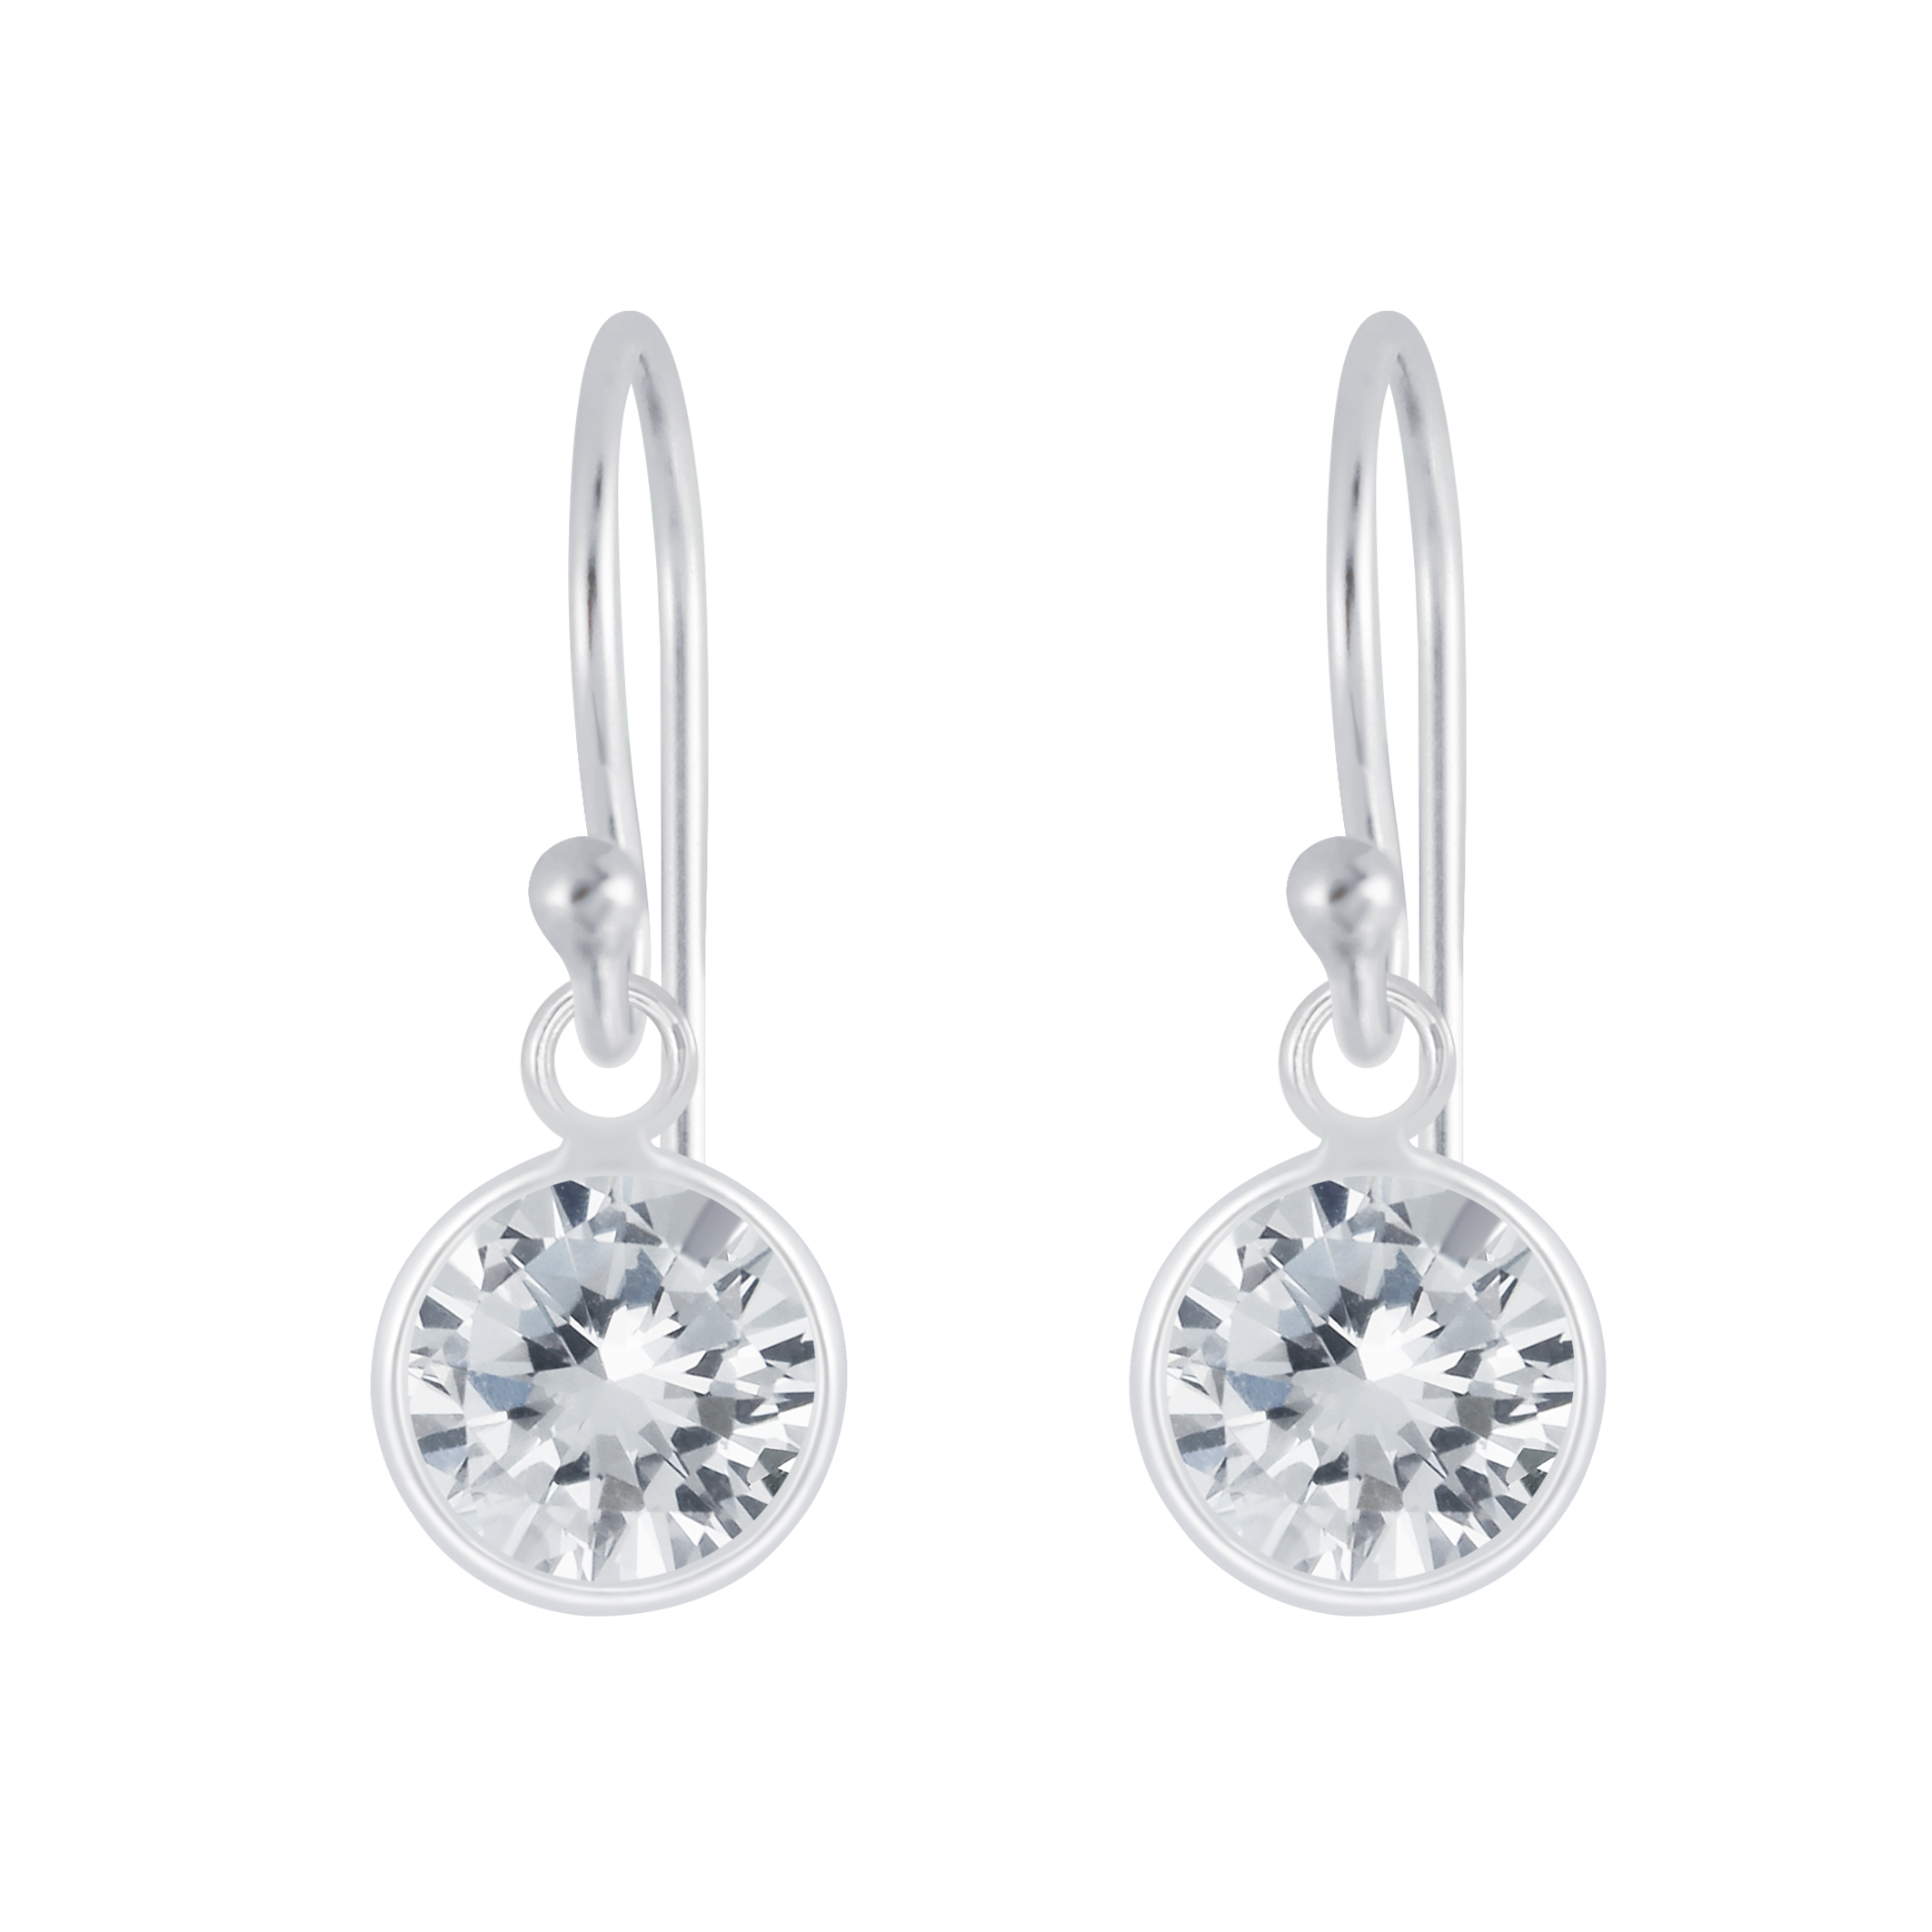 cubic zirconia and nickel-free sterling silver dangle earrings